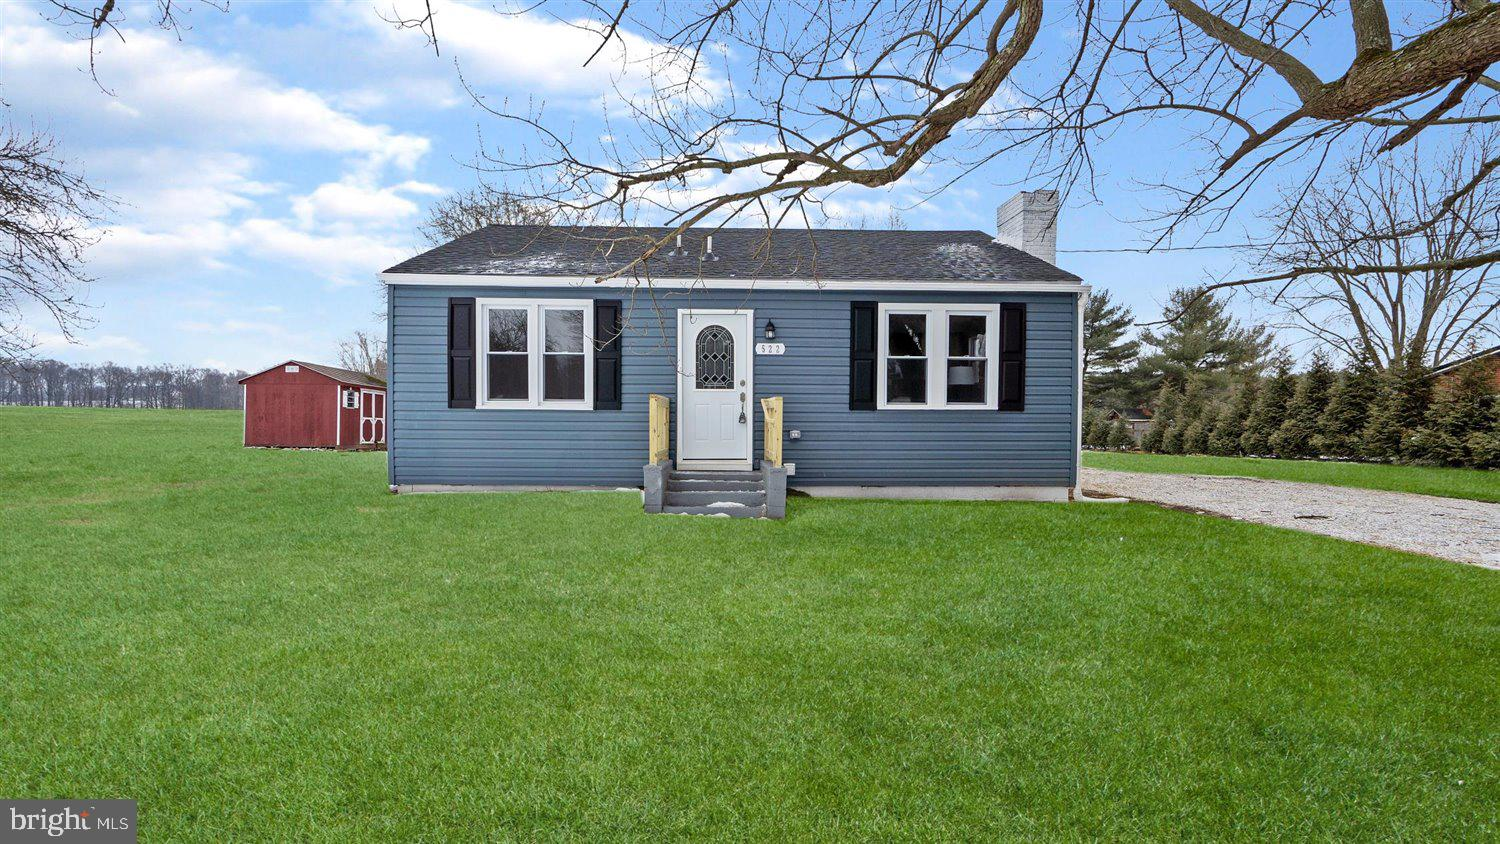 Will be Active on the Market May 14th- Friday   You must come see this see this beautifully renovate